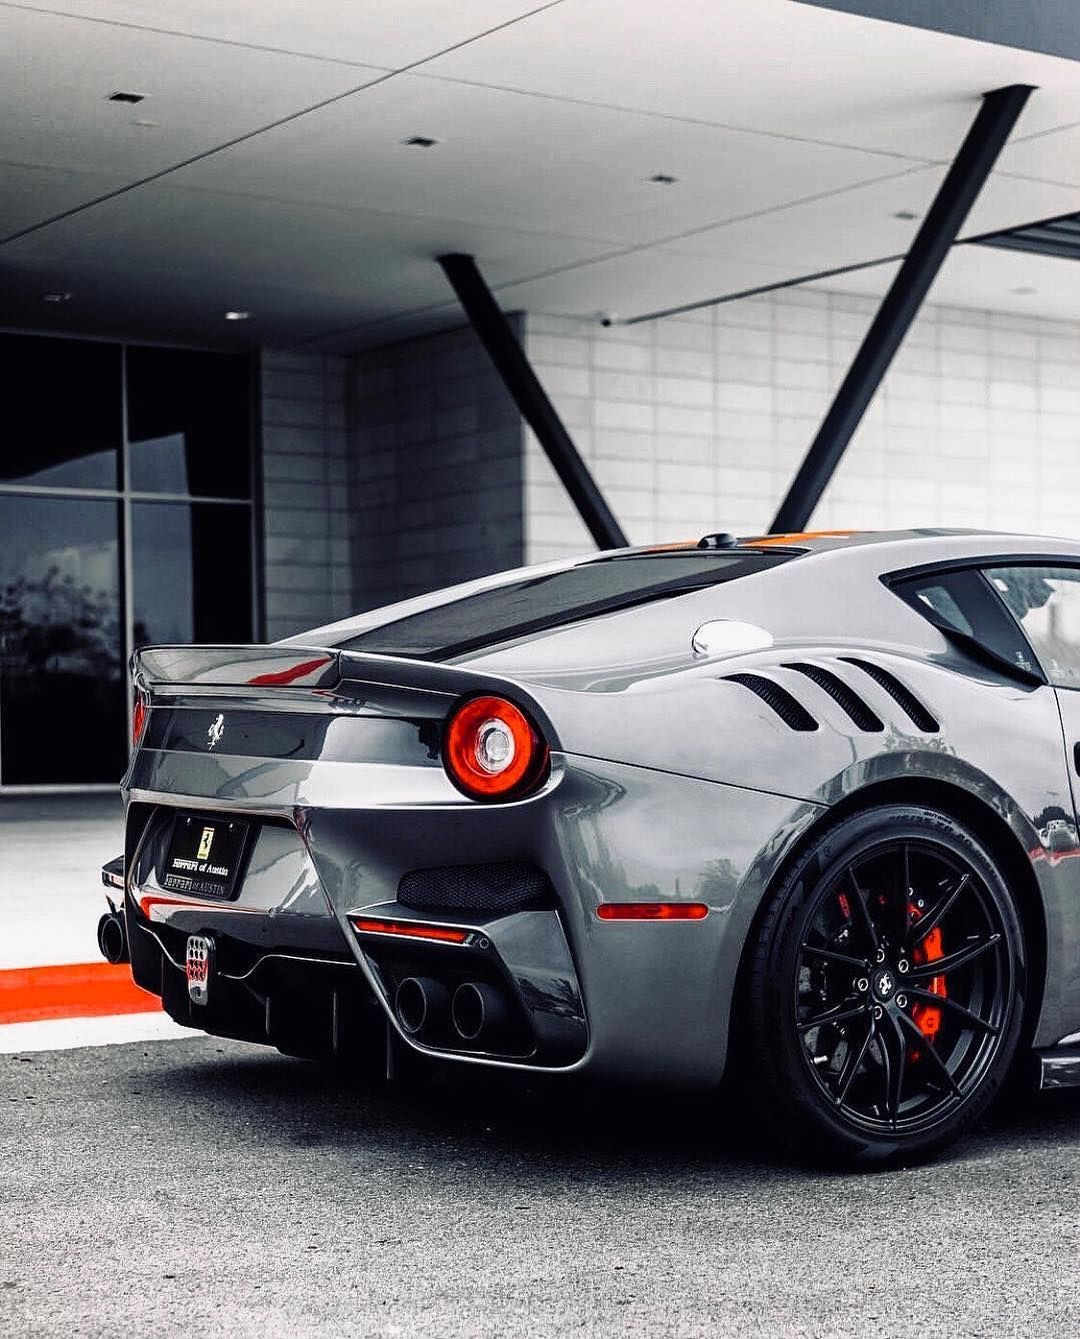 What Is The Best Car In The World These 20 Cars Are More Than Just Fun They Re The Fastest Manufacturing Cars On The P Super Cars Ferrari F12 Tdf Sports Cars